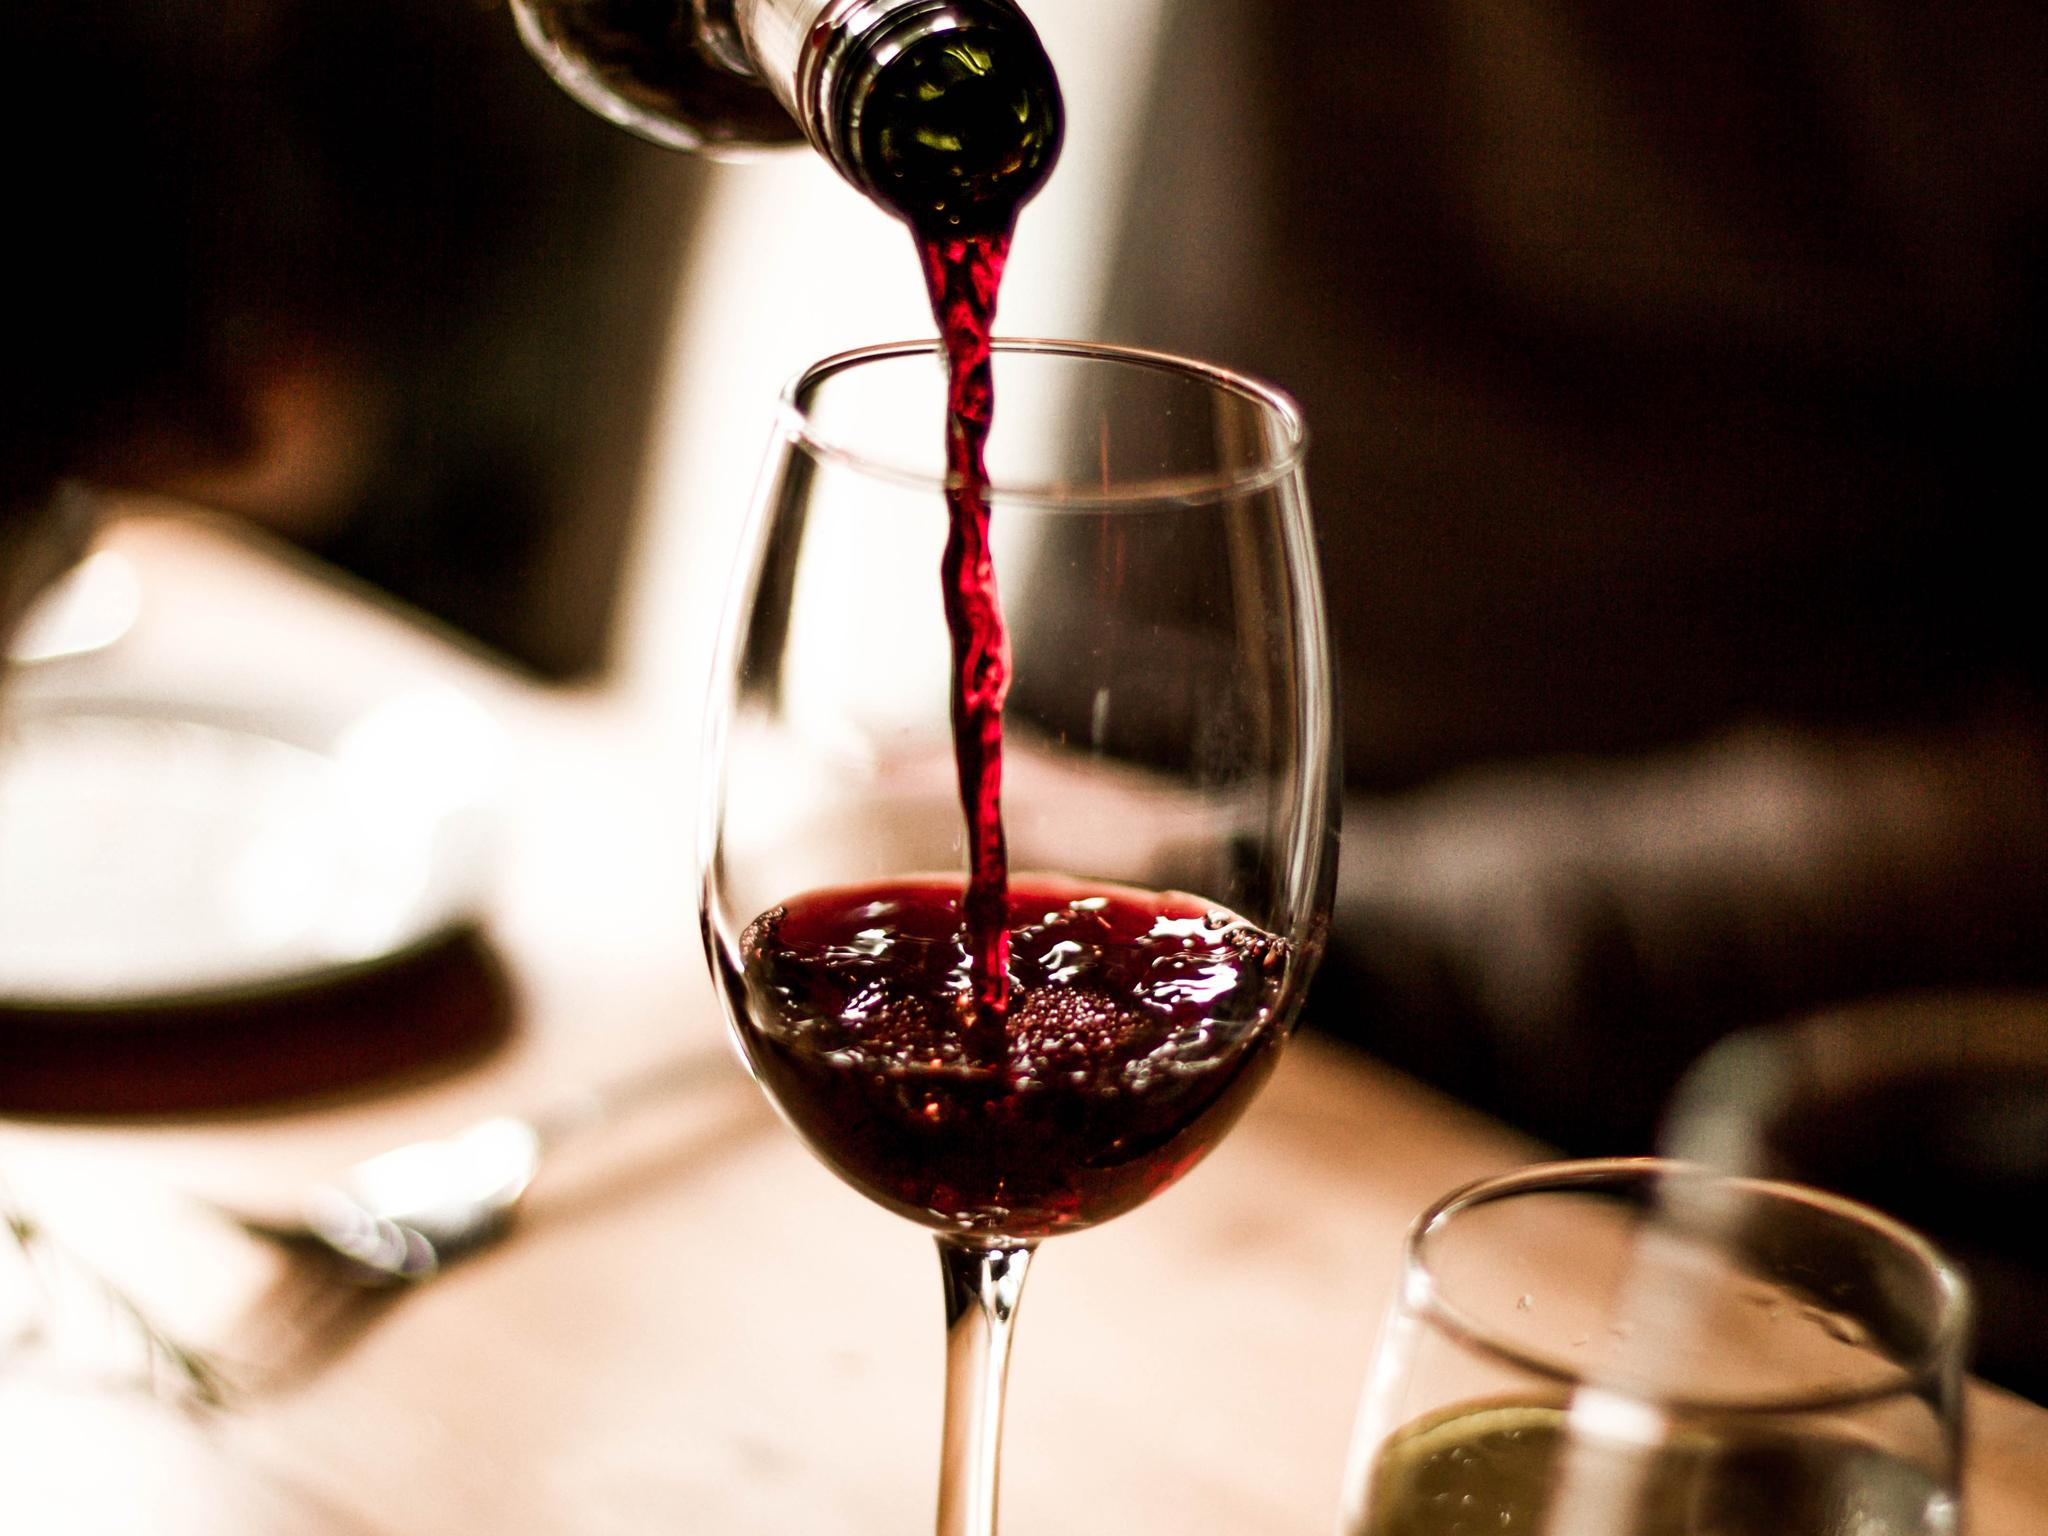 Pour a glass of Merlot, and make a birthday toast! It's not